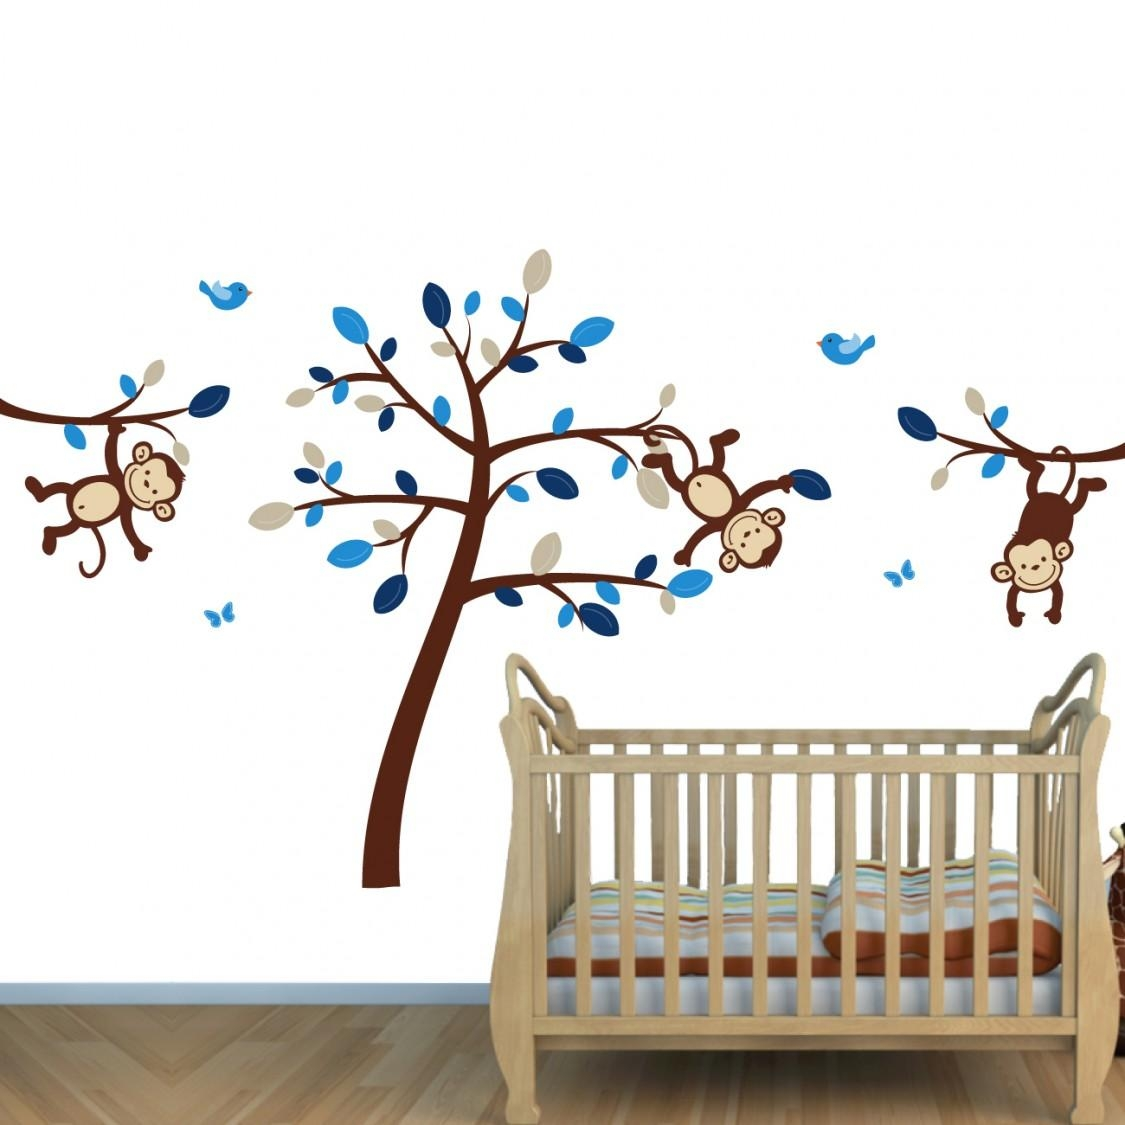 & Blue Jungle Murals For Kids & Monkey Wall Art For Boys Rooms Within Blue And Brown Wall Art (View 7 of 20)